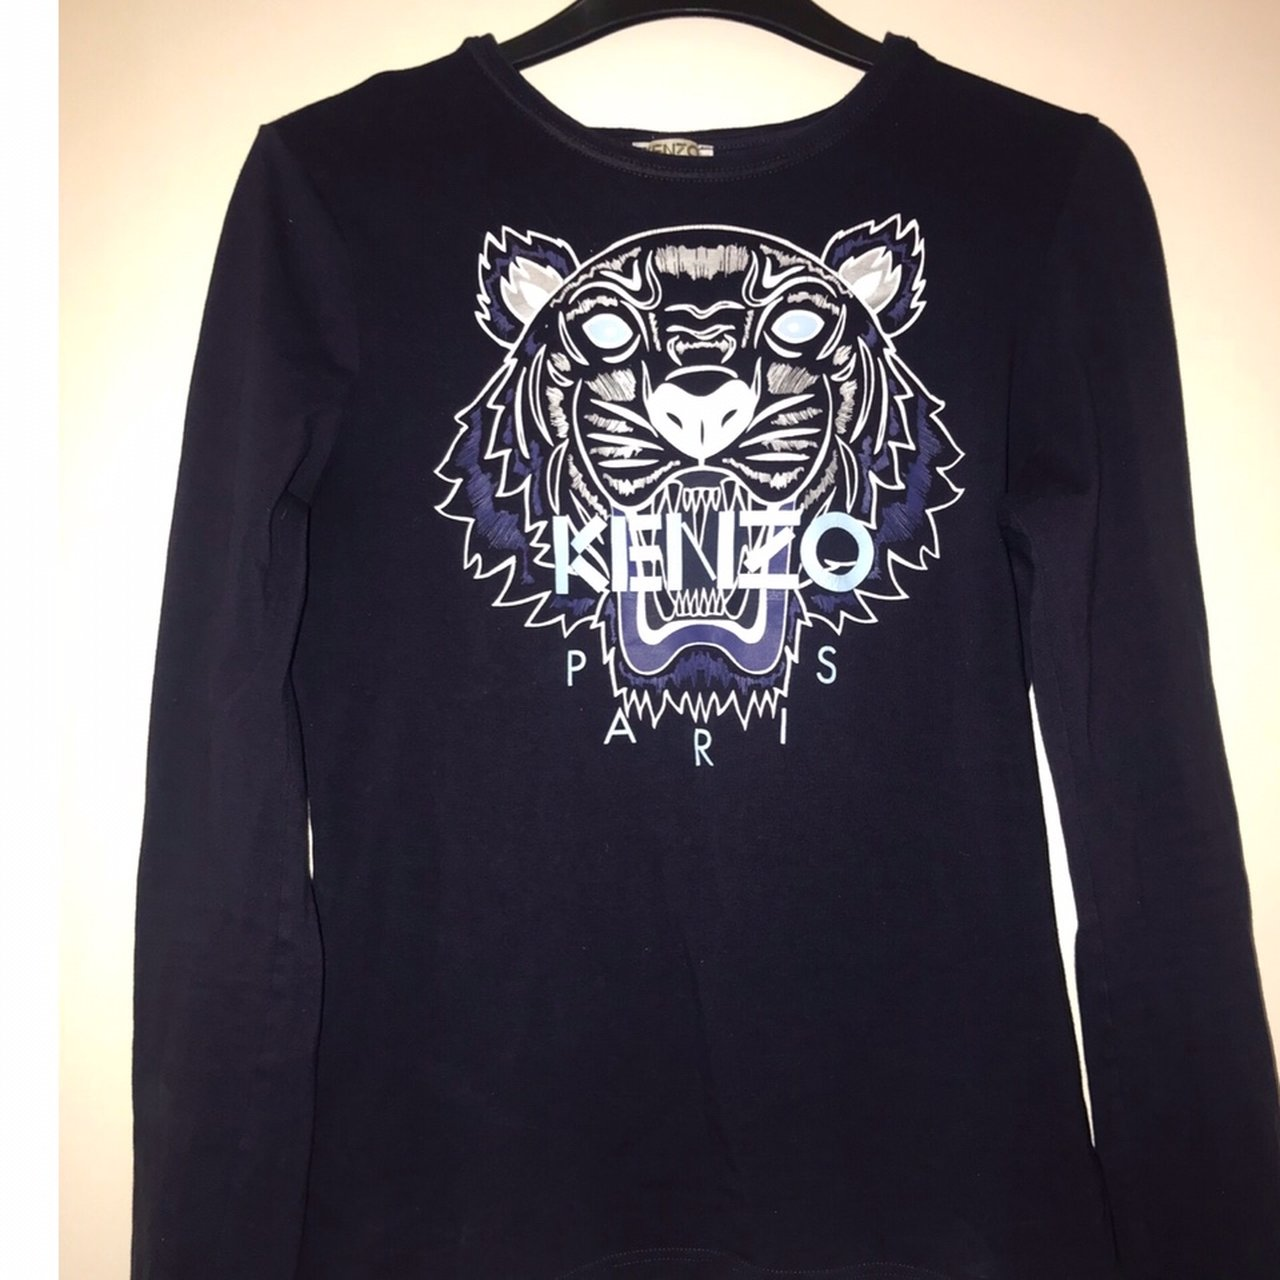 Kenzo tiger navy long sleeve top kids age 16 would fit a UK - Depop 8df1a4708